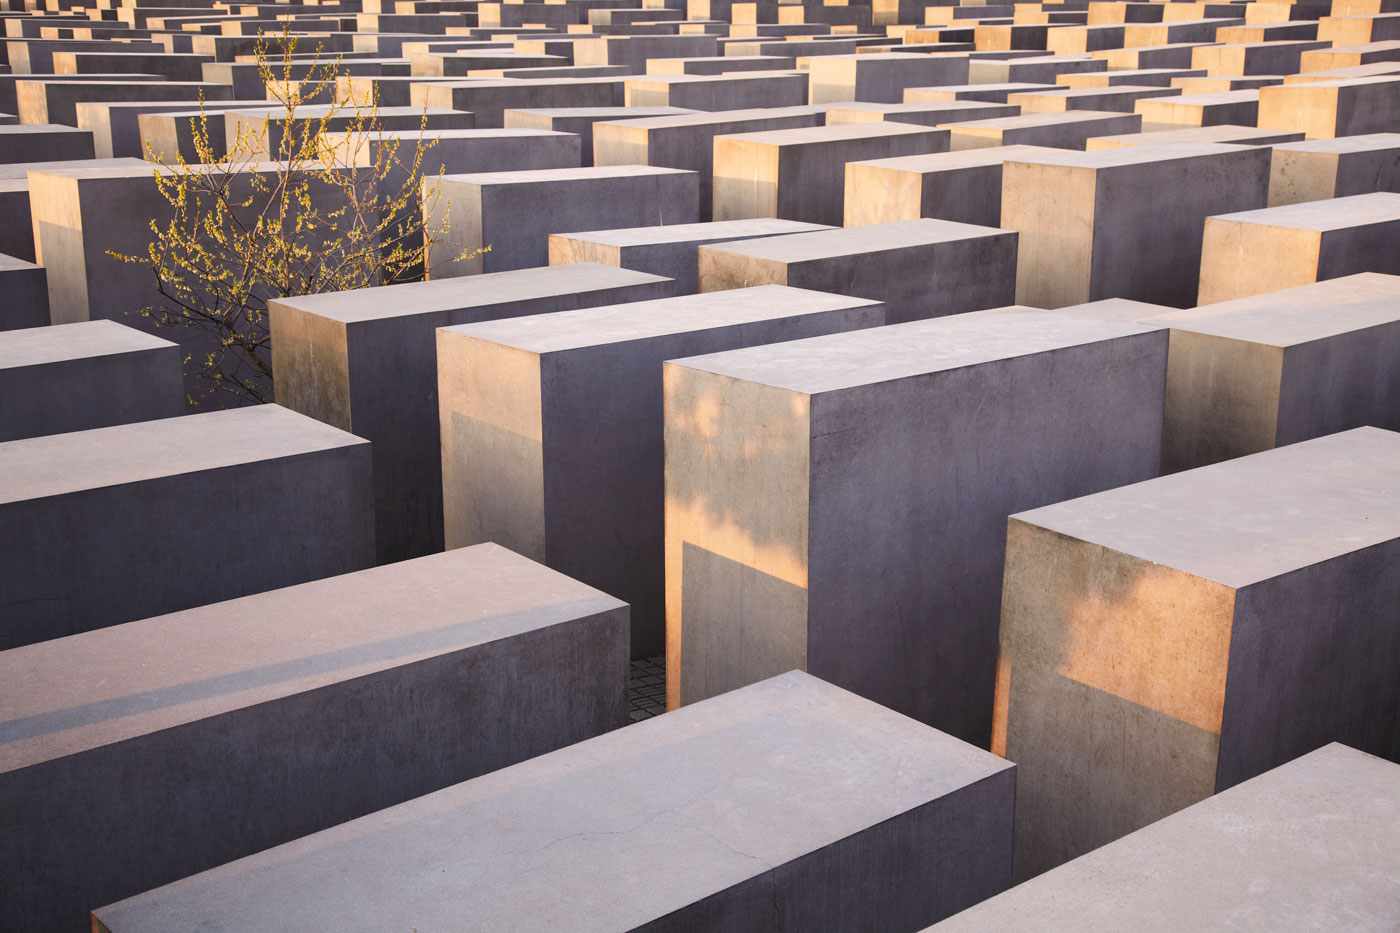 Memorial to the Murdered Jews of Europe, Berlin, Germany, No. IV